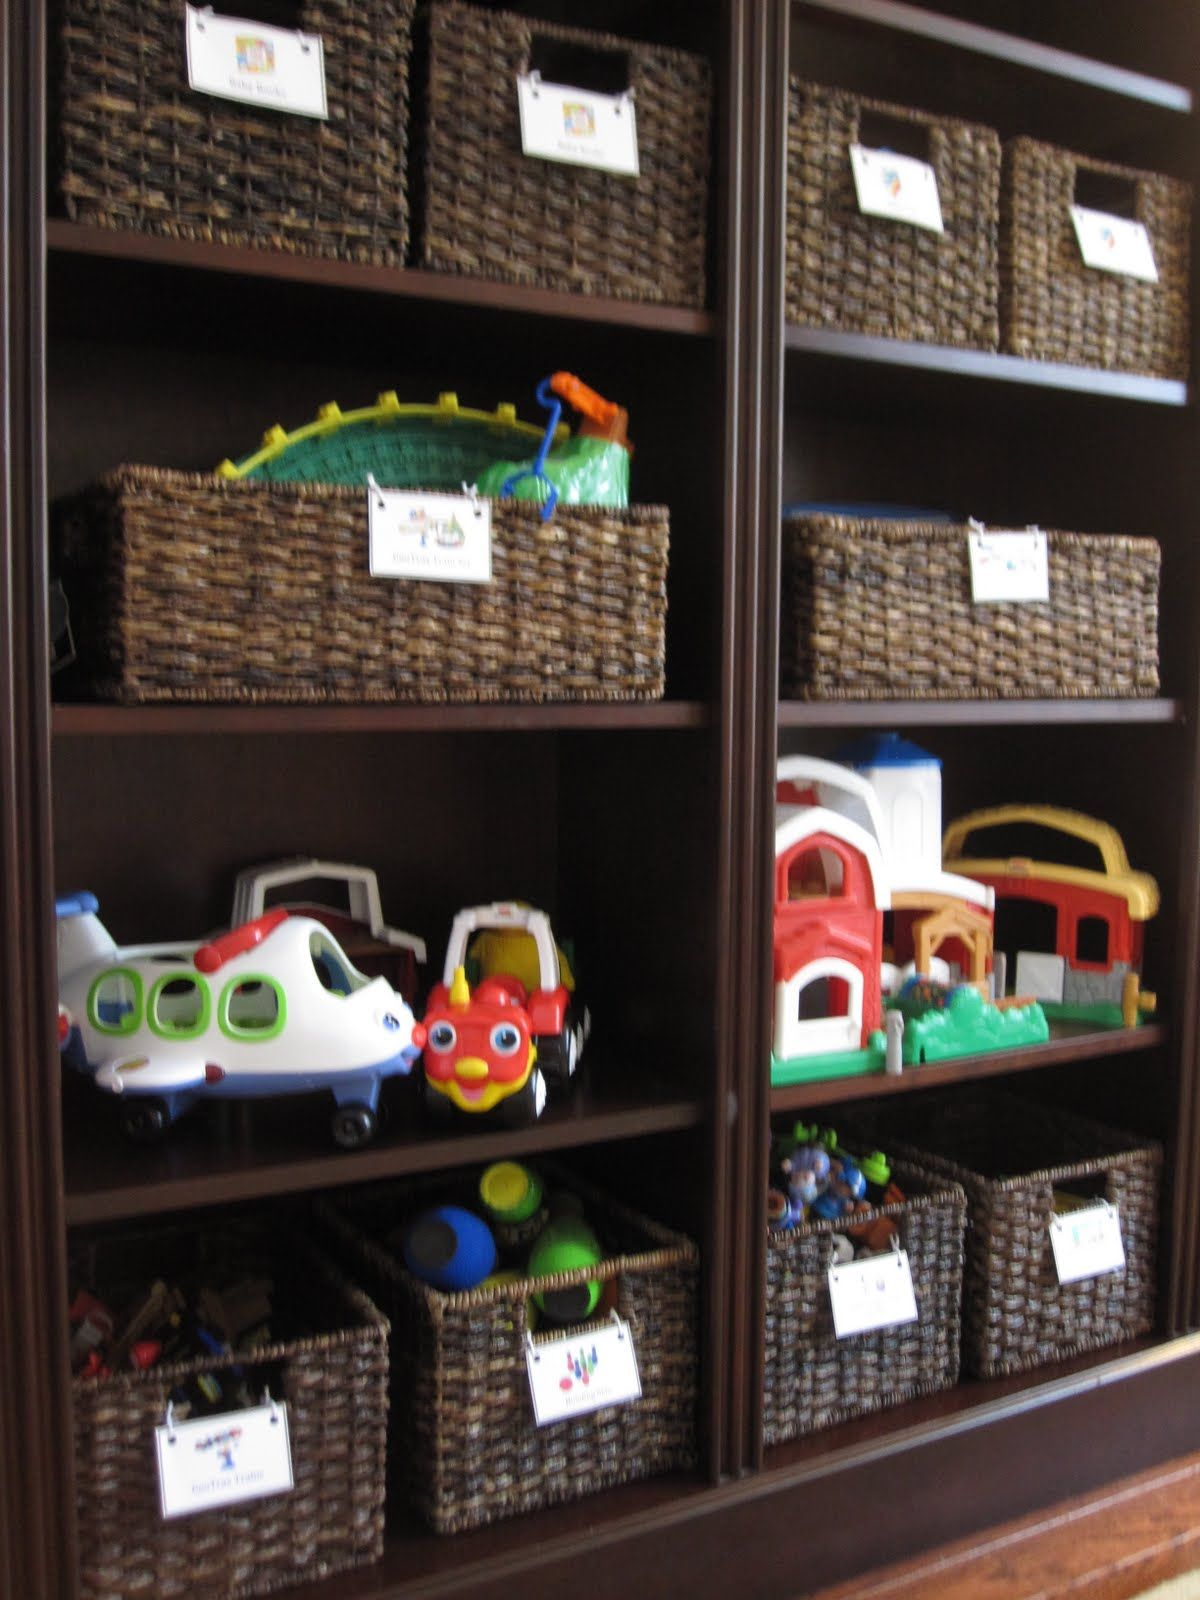 toy storage ideas for living room. Toy Storage Ideas Living Room For Small Spaces. Learn How To Organize Toys In A Space, Furniture, And DIY Ideas. M